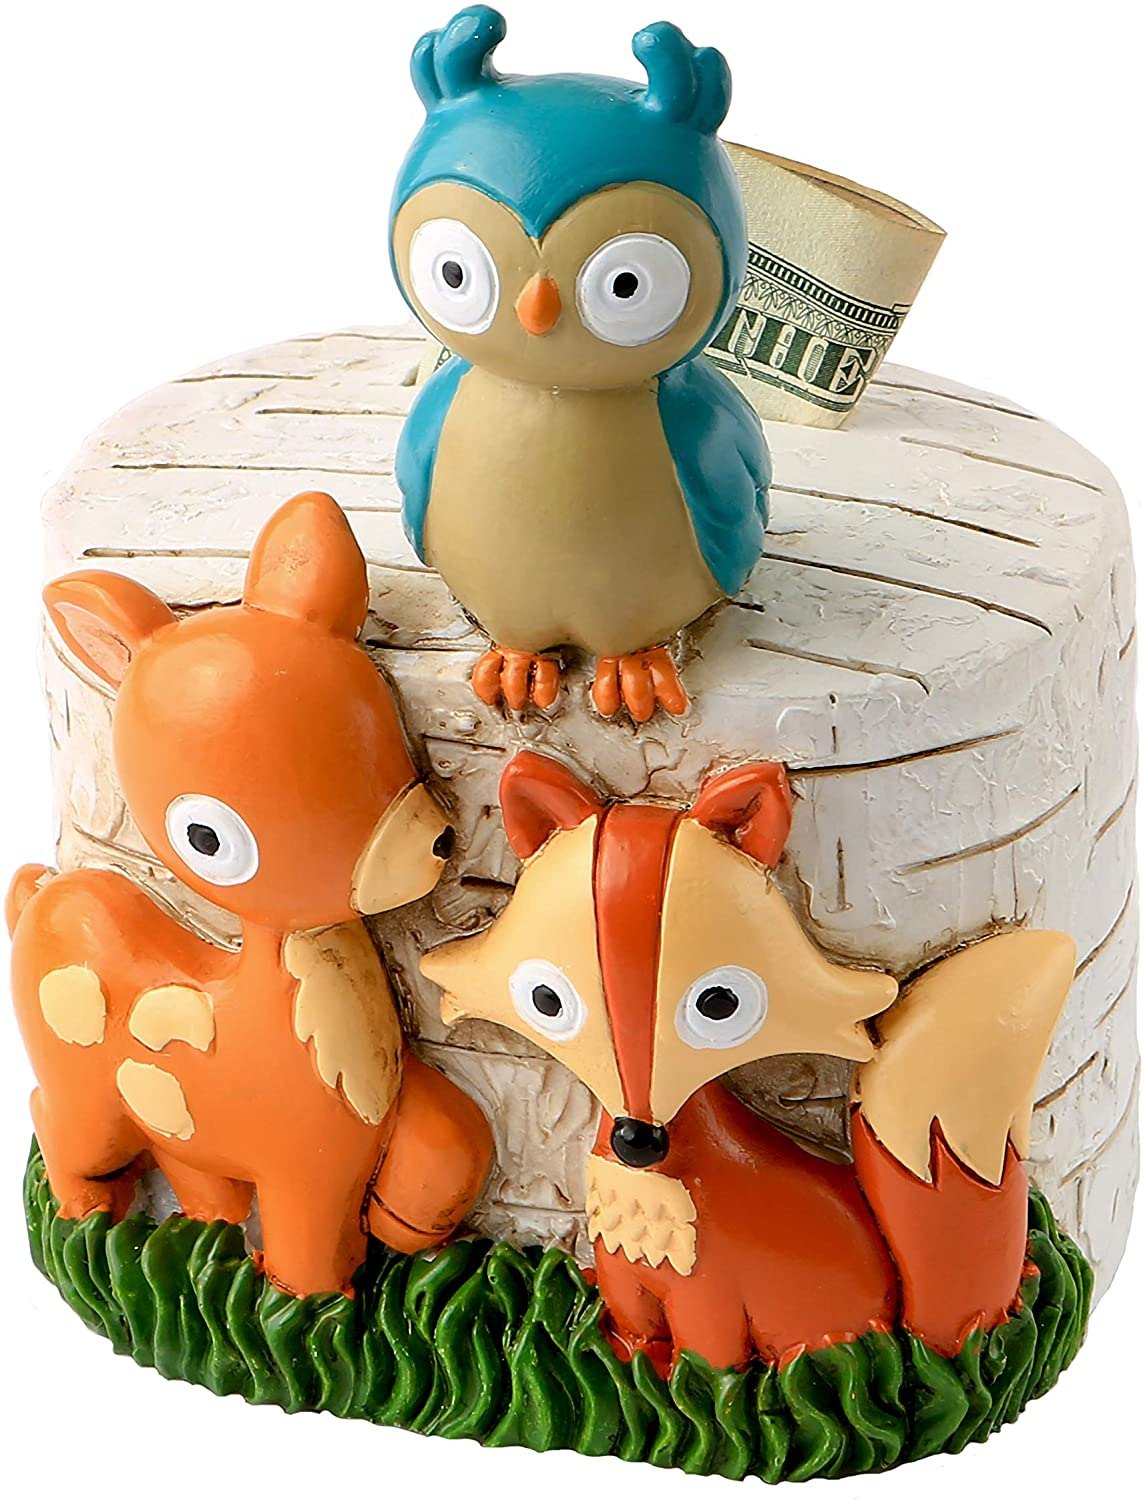 Handpainted Polyresin Baby Room Decor Fashioncraft Woodland Animals Nursery Money Bank Gender Neutral for Boys and Girls 4.5 x 3.5 x 3 inch 3D Design